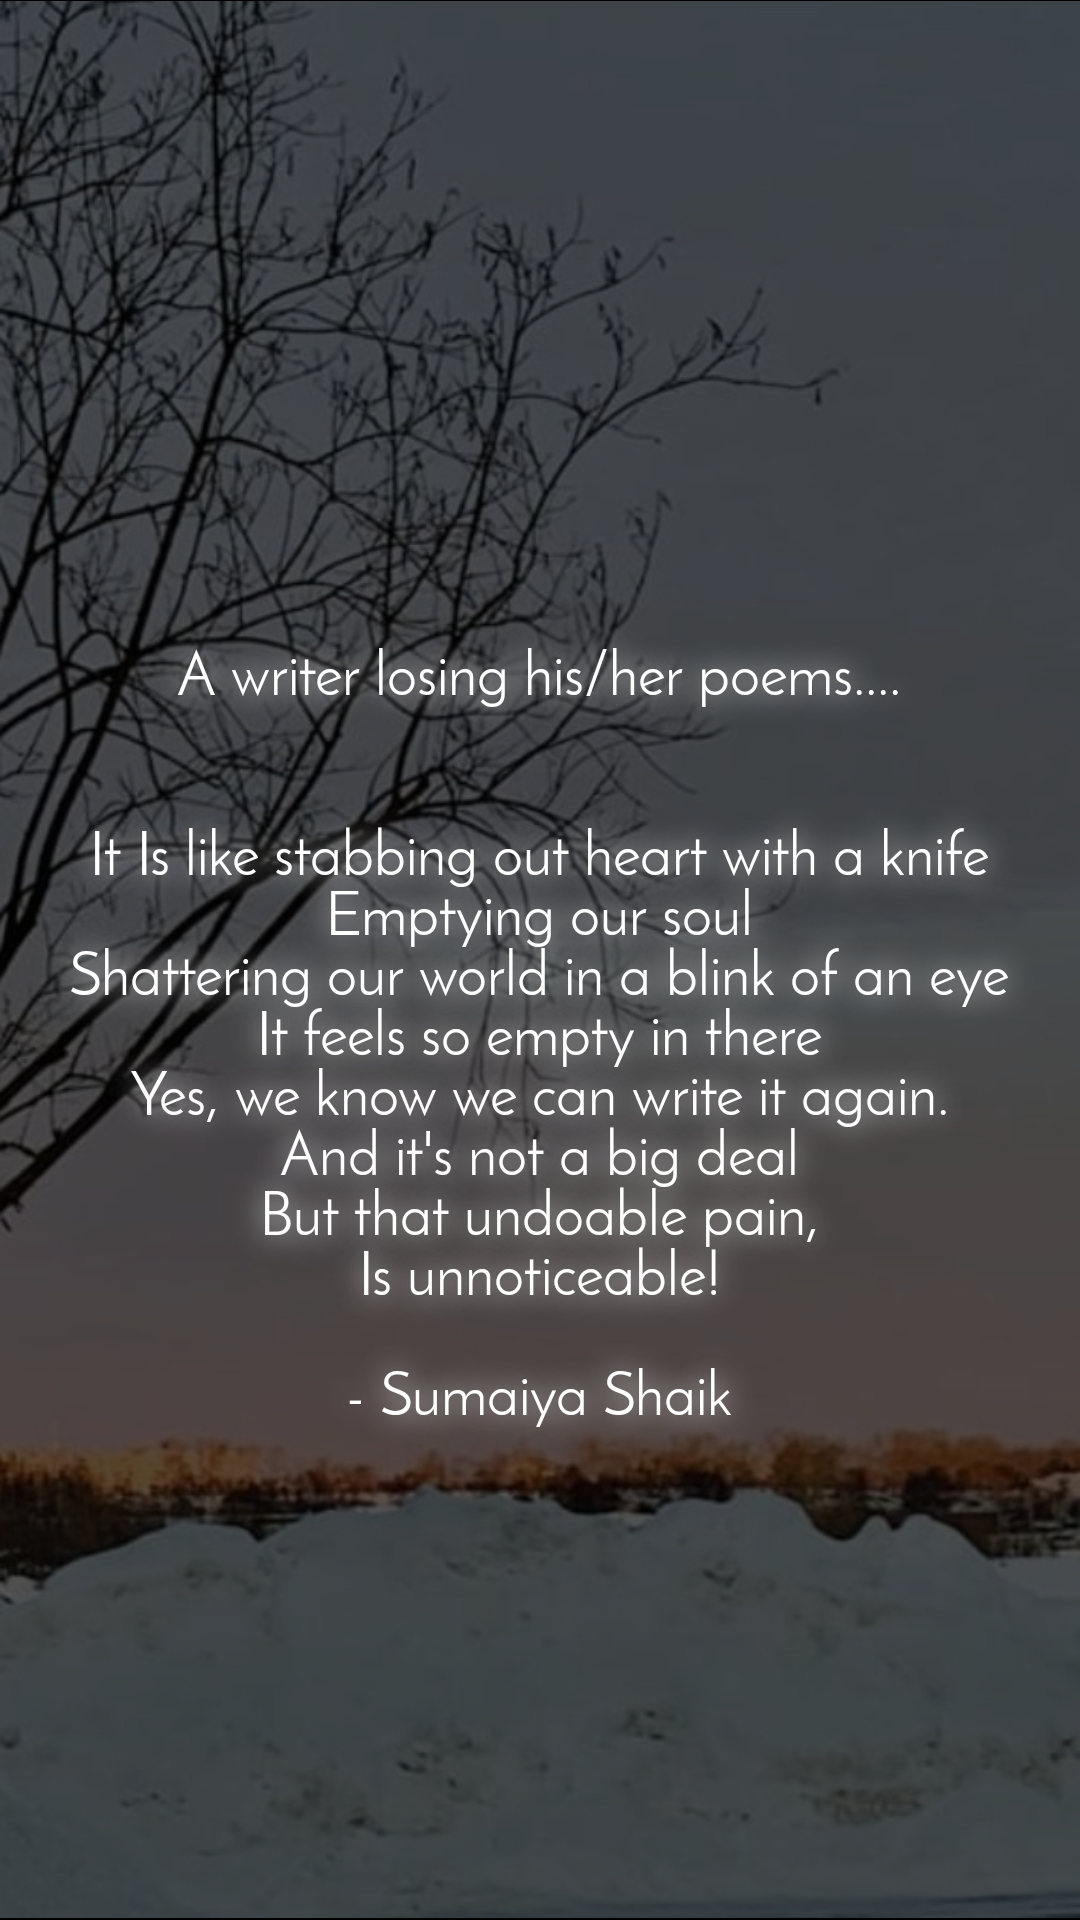 A writer losing his/her poems....   It Is like stabbing out heart with a knife Emptying our soul Shattering our world in a blink of an eye It feels so empty in there Yes, we know we can write it again. And it's not a big deal But that undoable pain, Is unnoticeable!  - Sumaiya Shaik